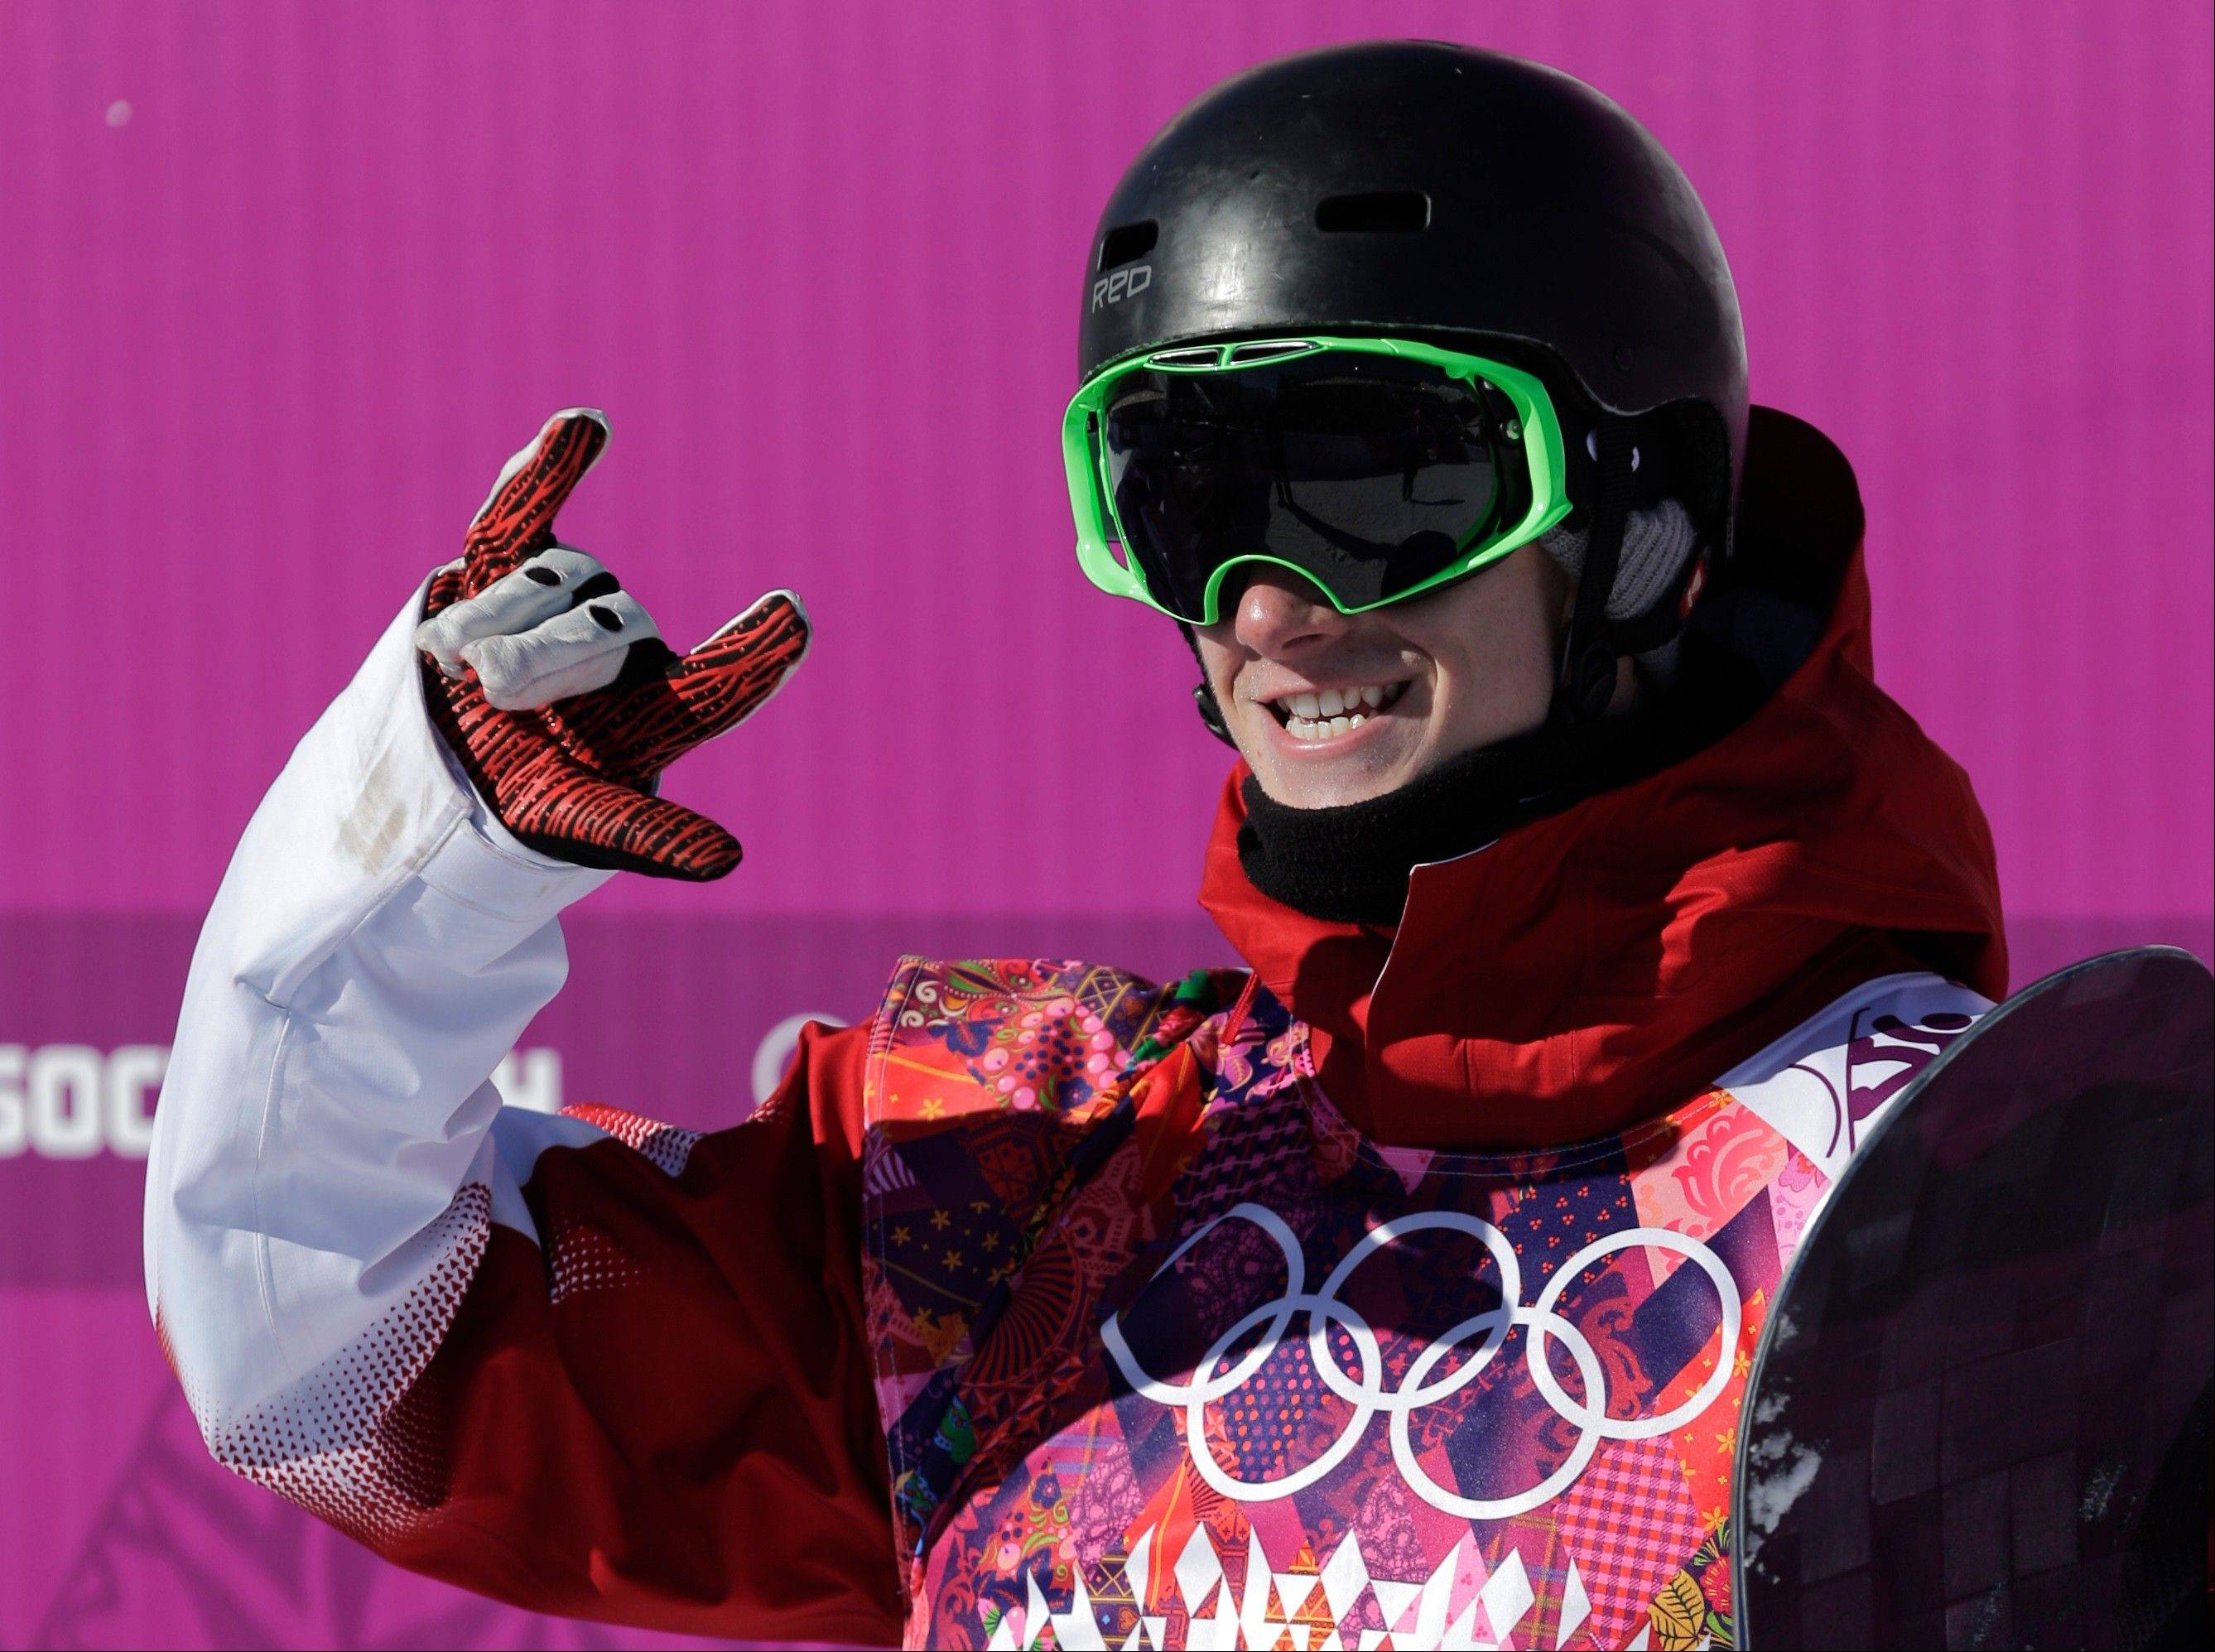 Canada's Maxence Parrot reacts Thursday after a run during the men's snowboard slopestyle qualifying at the Rosa Khutor Extreme Park ahead of the 2014 Winter Olympics in Krasnaya Polyana, Russia.